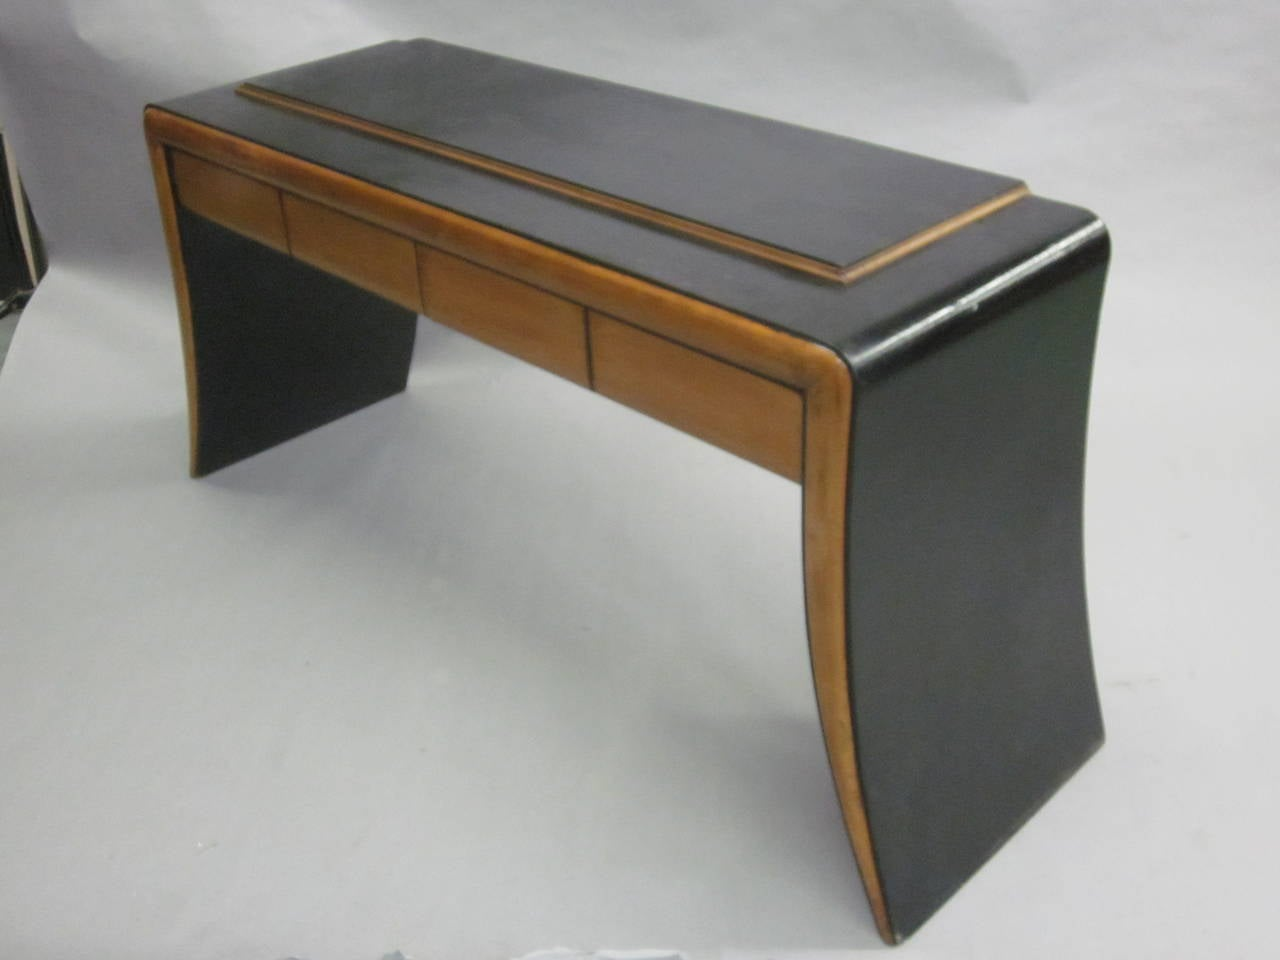 Italian Mid-Century Modern Neoclassical Vanity / Sofa Table by Paolo Buffa, 1930 6